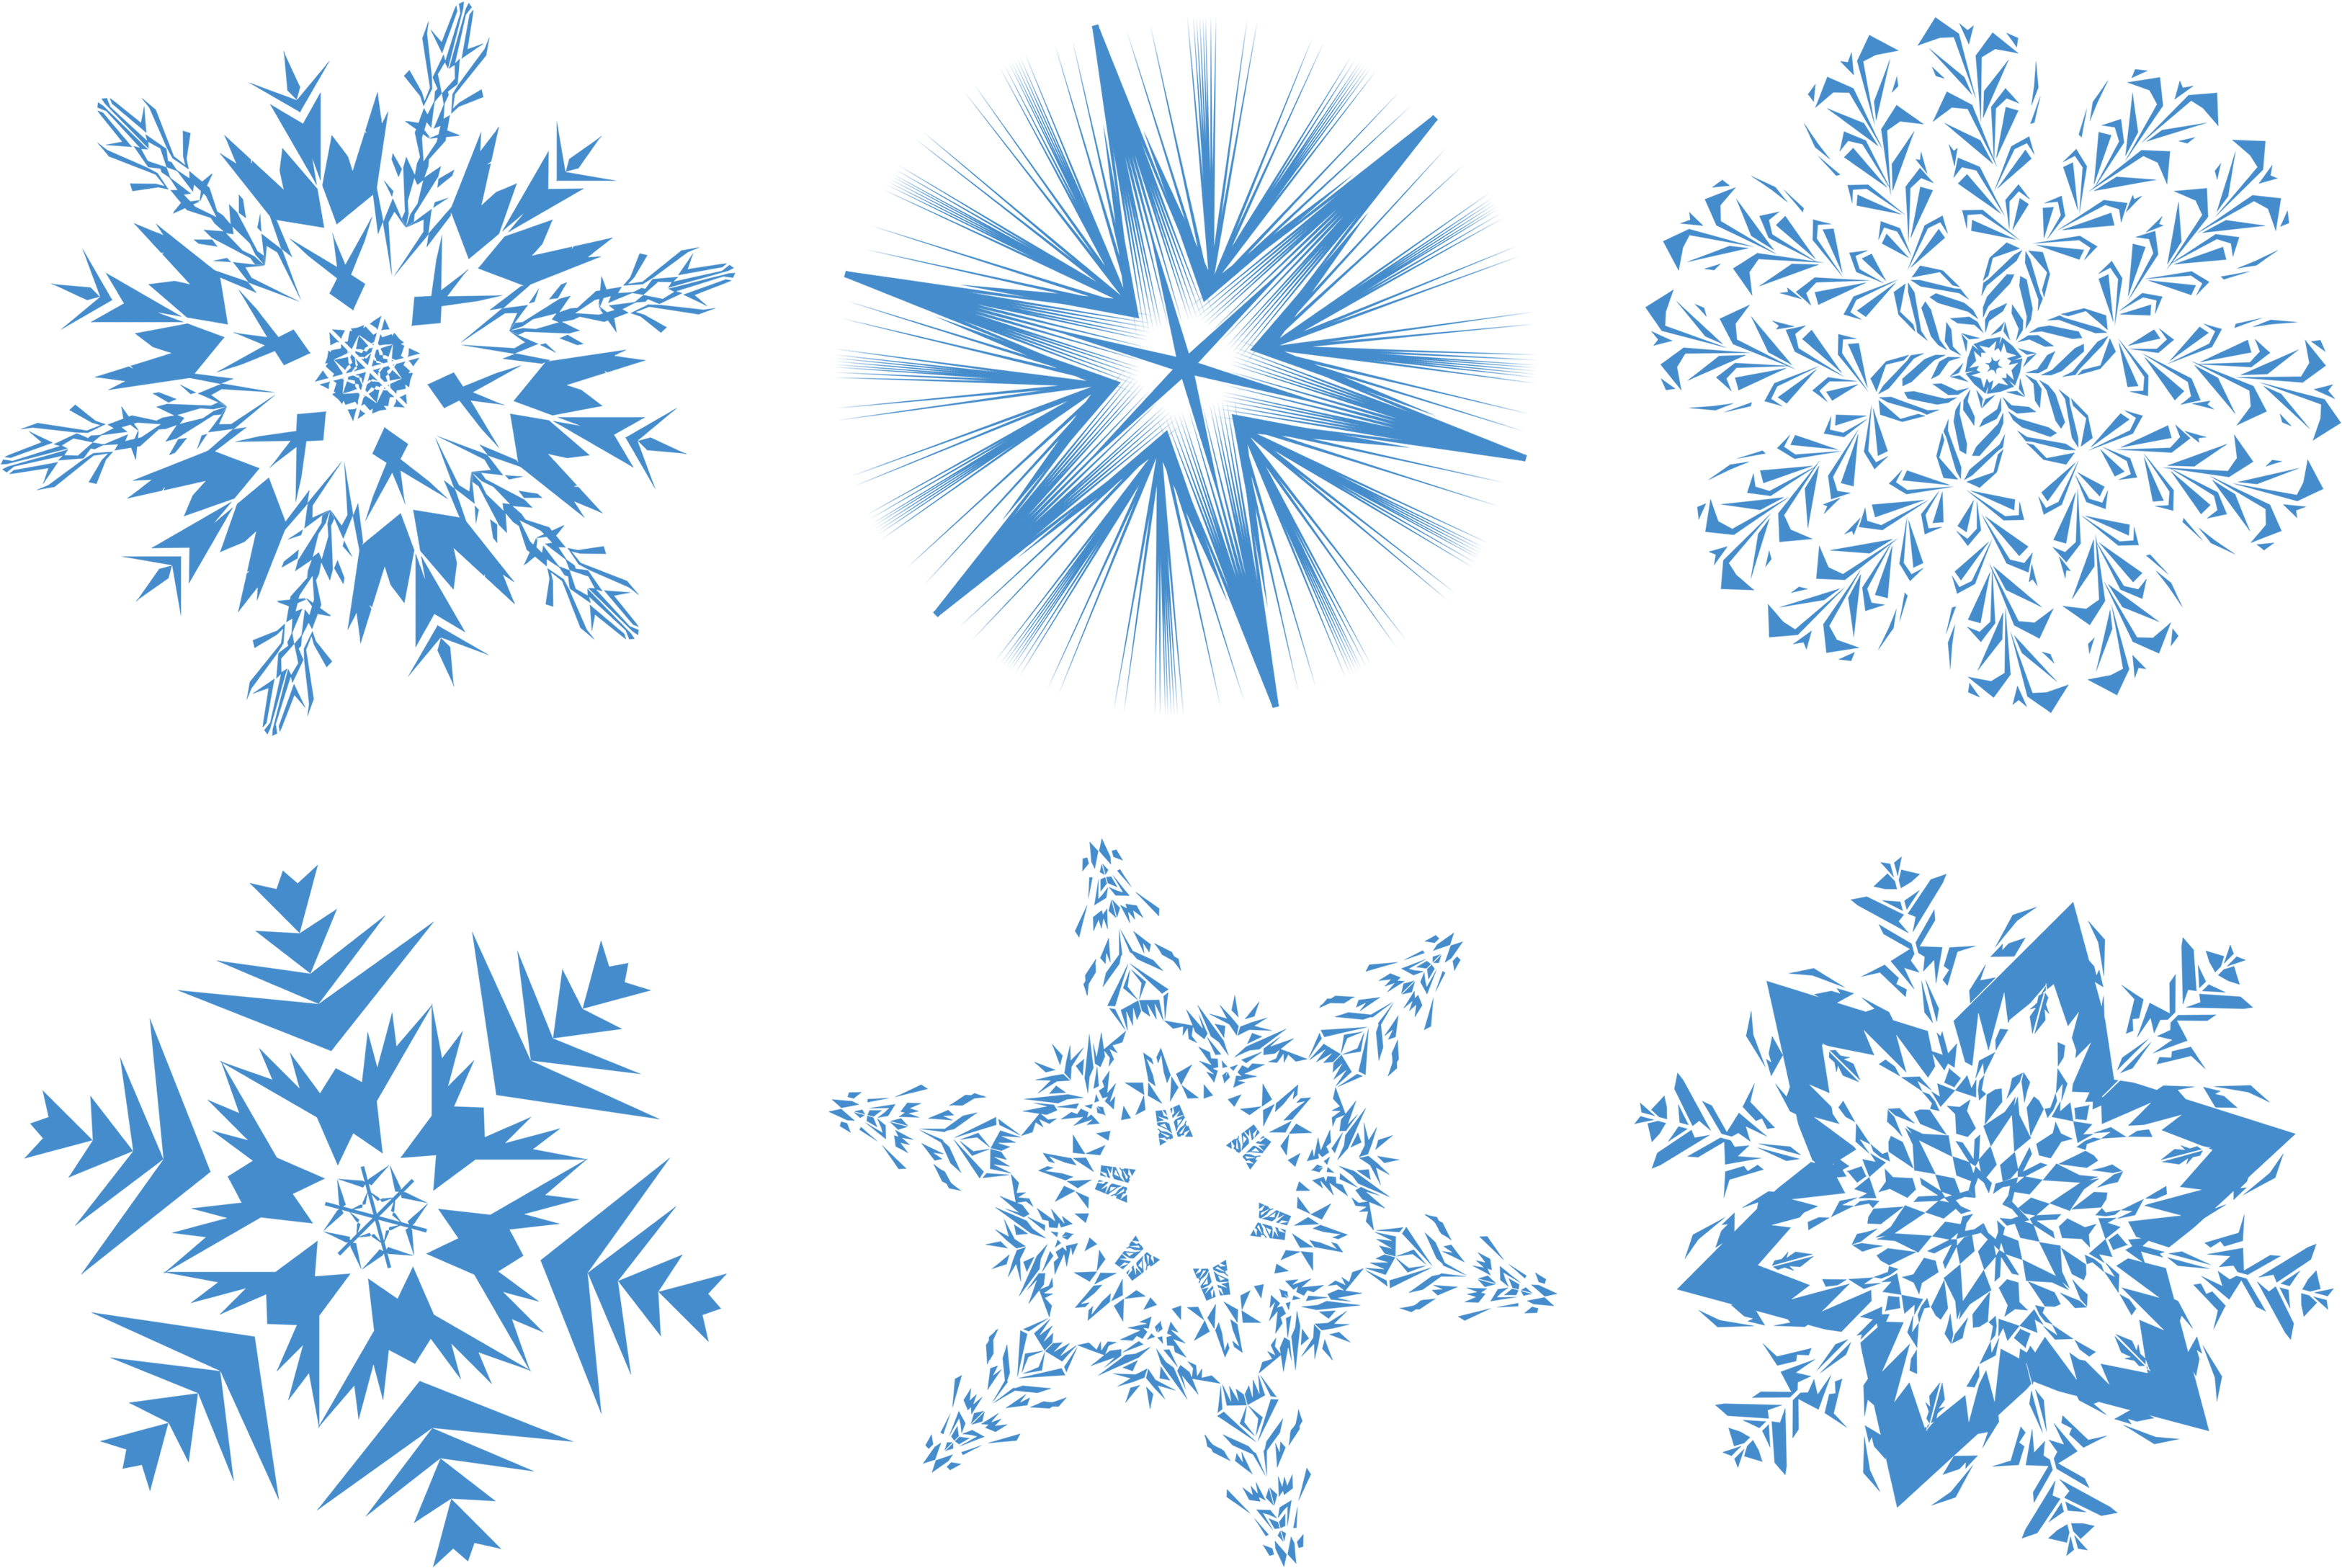 Blue snowflakes png. Image purepng free transparent